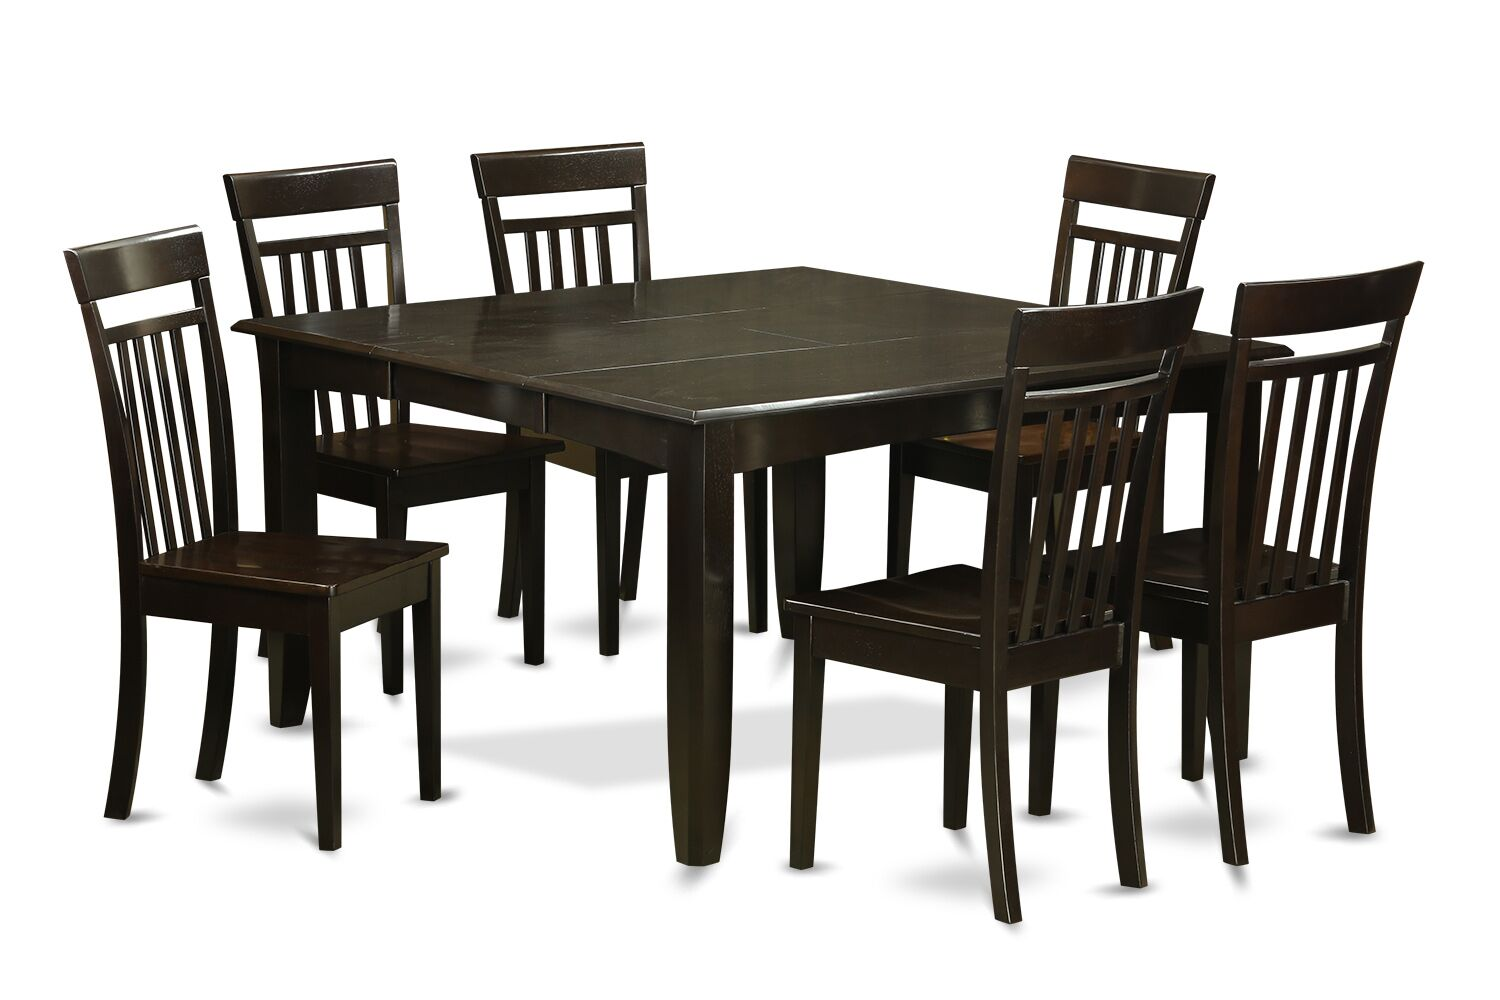 Dining Table Sets Pilning 7 Piece Wood Dining Set